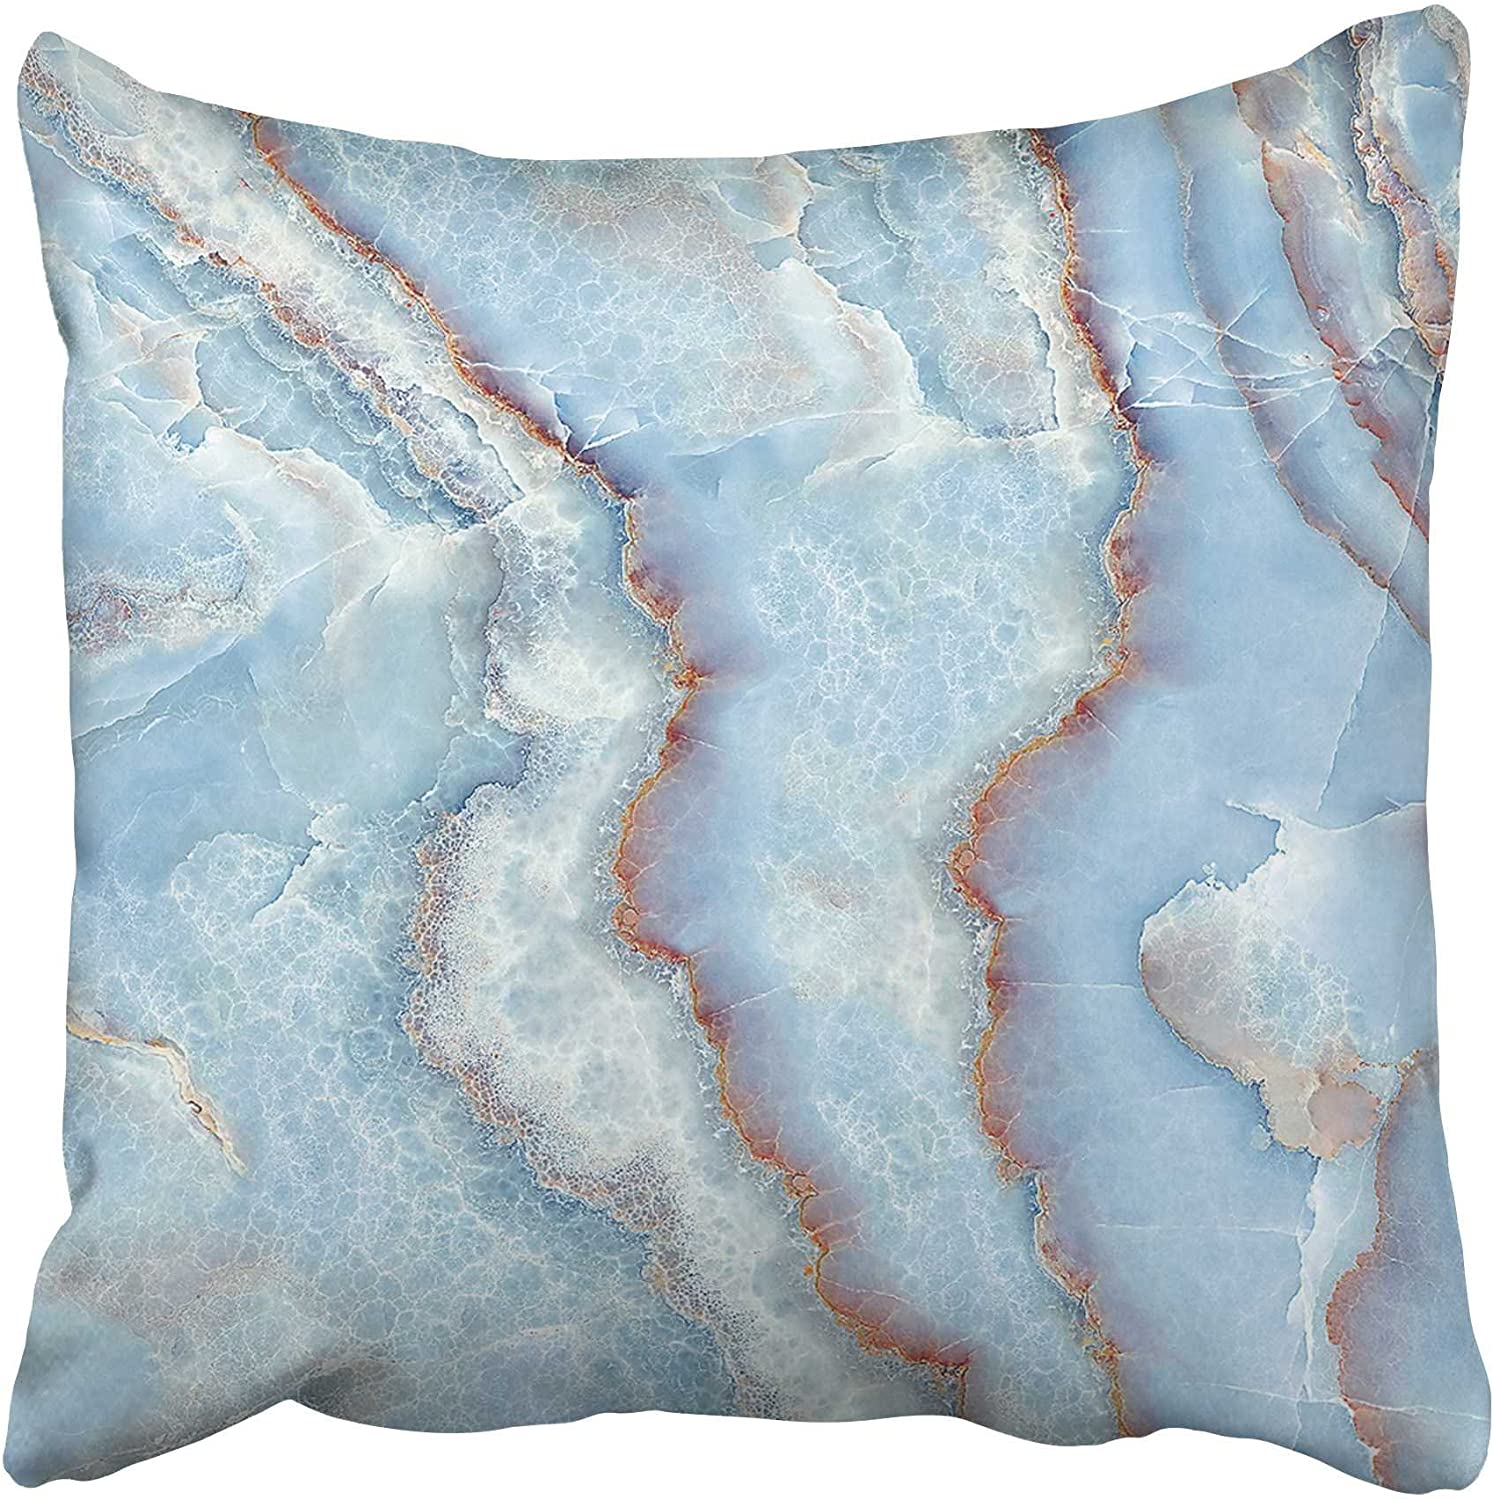 Amazon.com: Emvency Tan Nature Detailed Natural Marble High